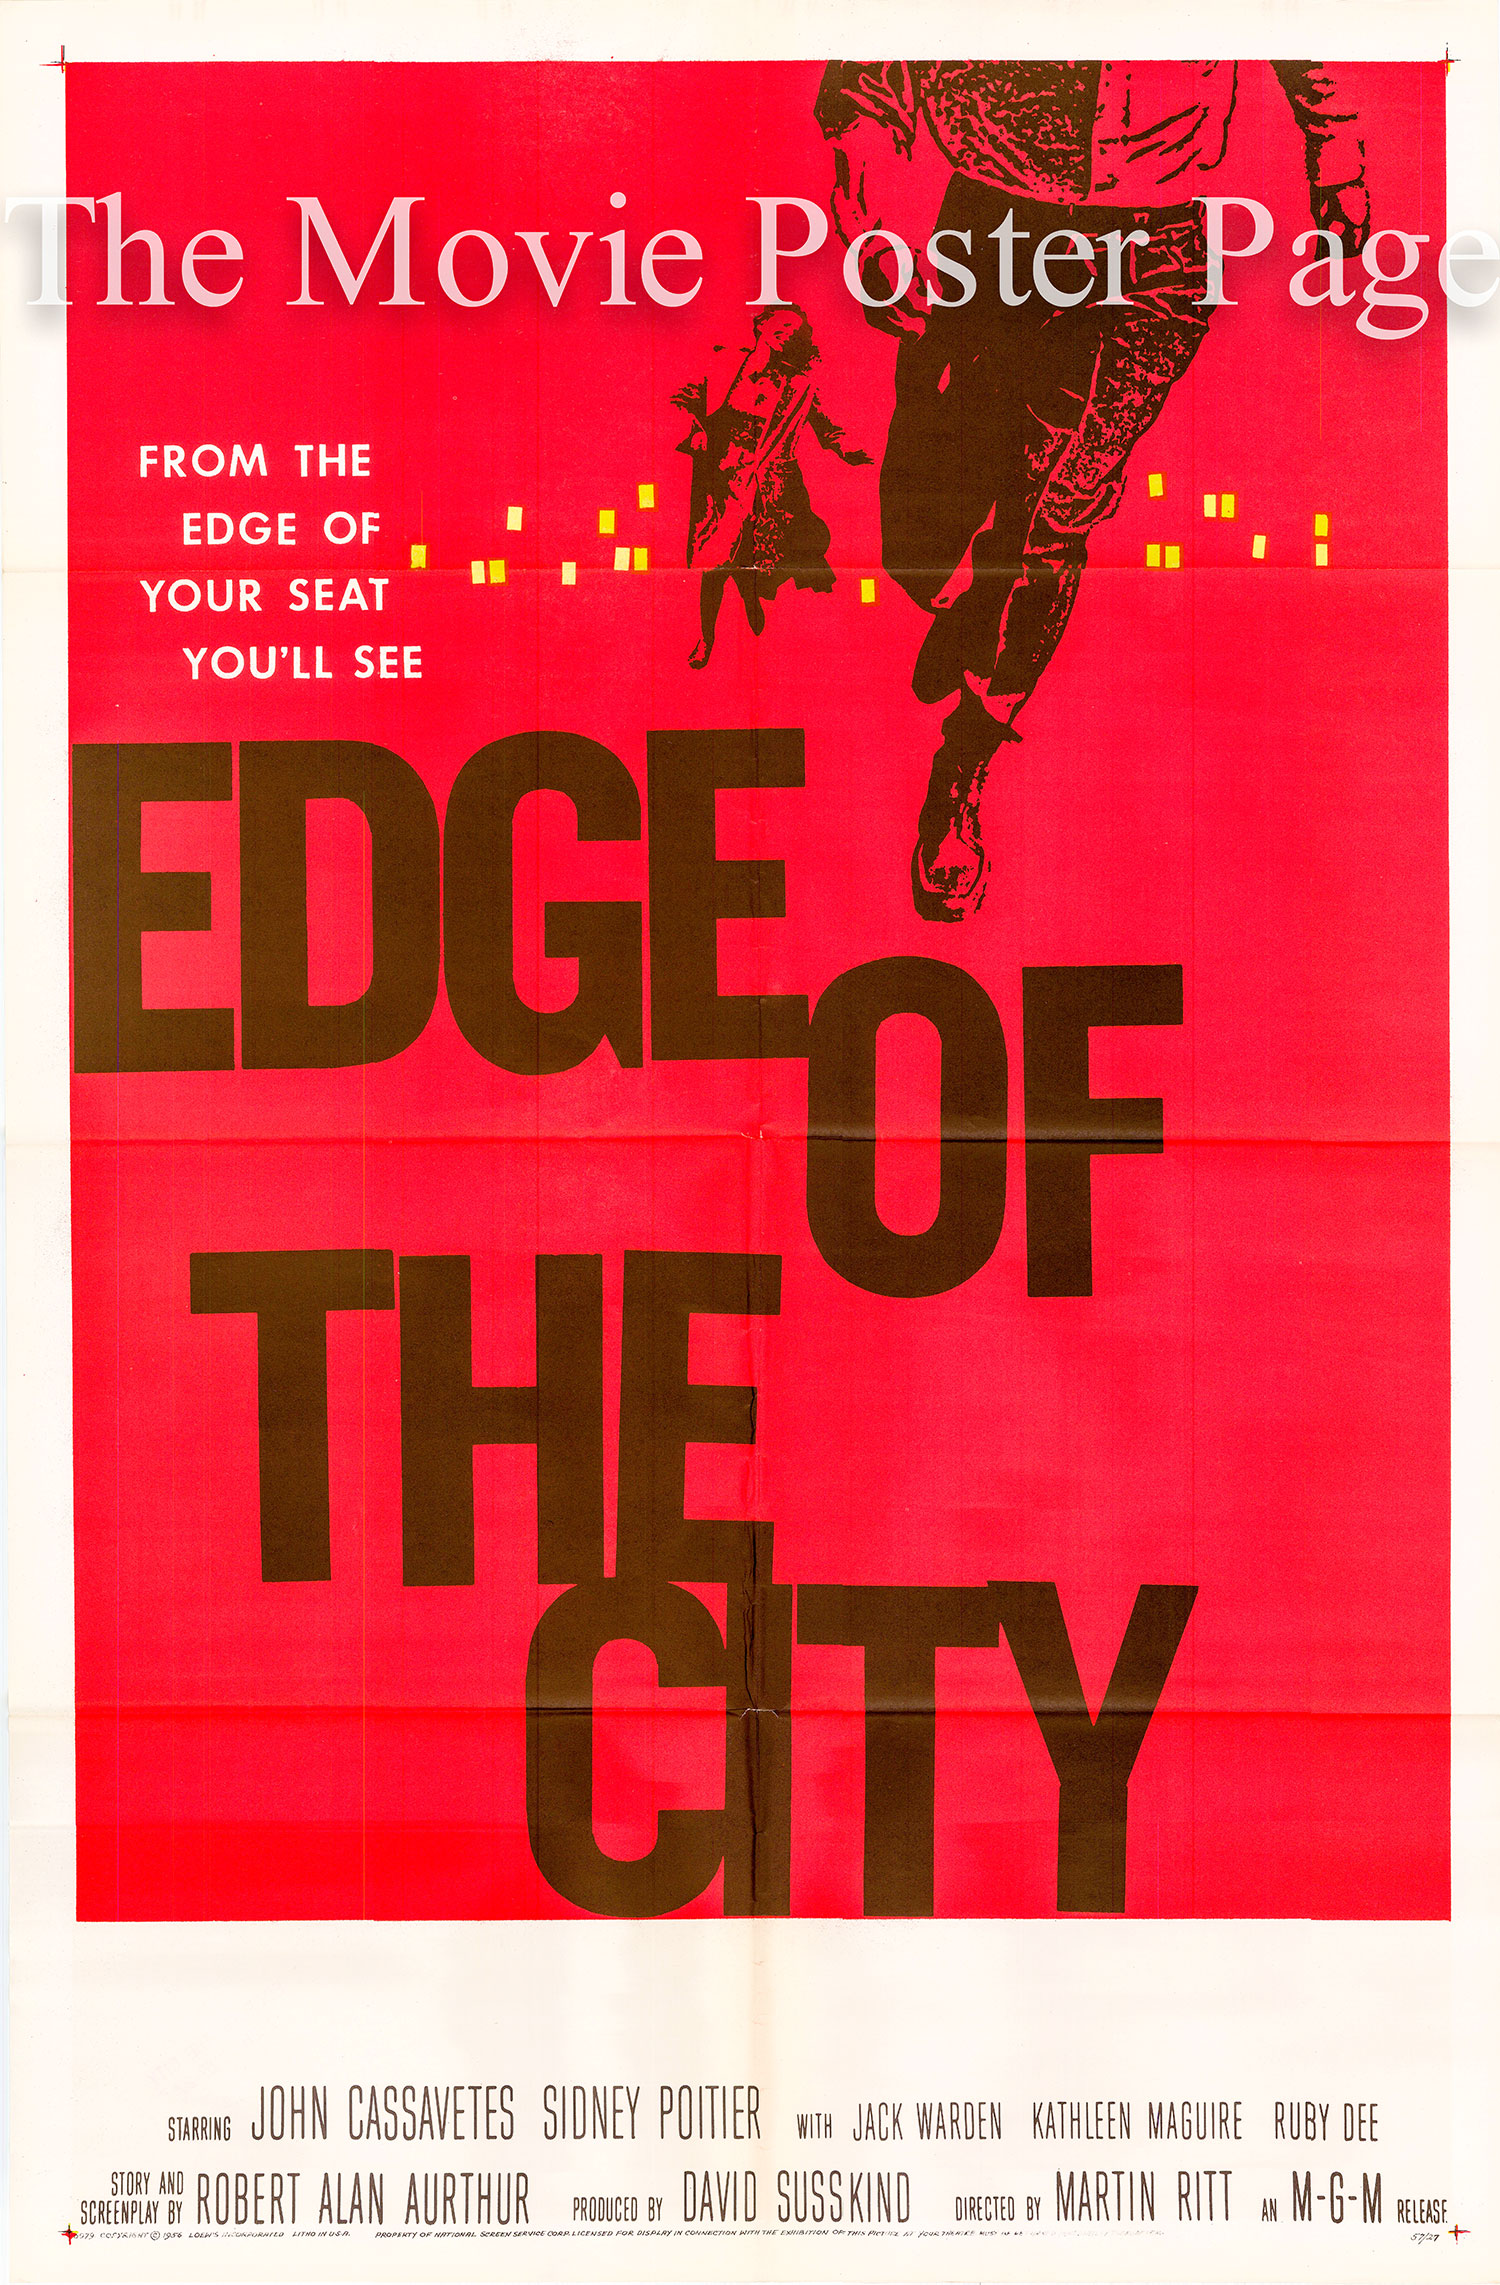 Pictured is a US one-sheet promotional poster for the 1957 Martin Ritt film Edge of the City starring Sidney Poitier and John Cassavetes, with art by Saul Bass.